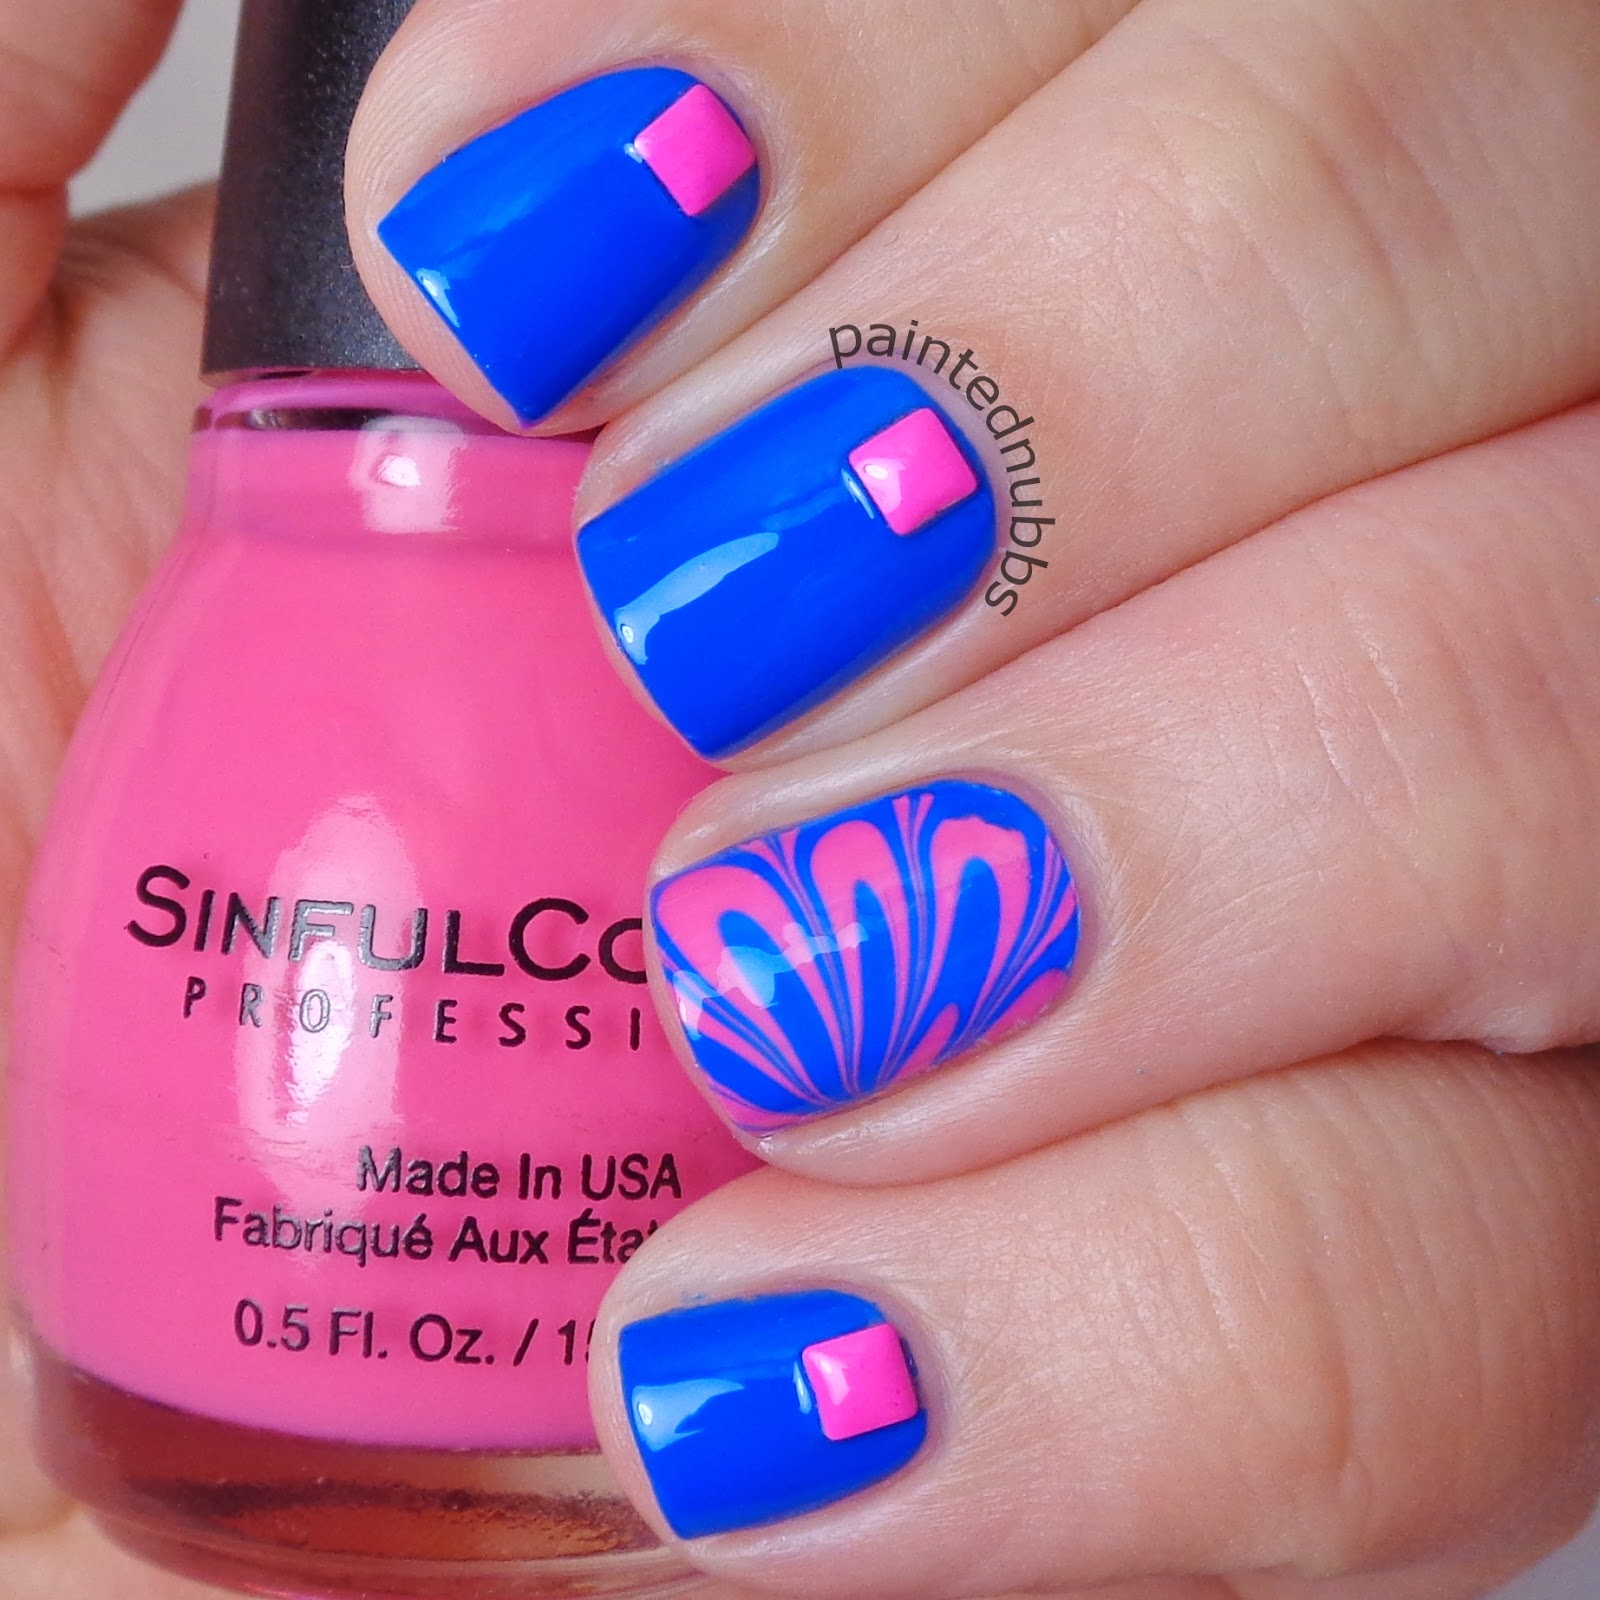 Nail Art February Challenge: Painted Nubbs: Twinkie Nail Art Challenge February Week 3